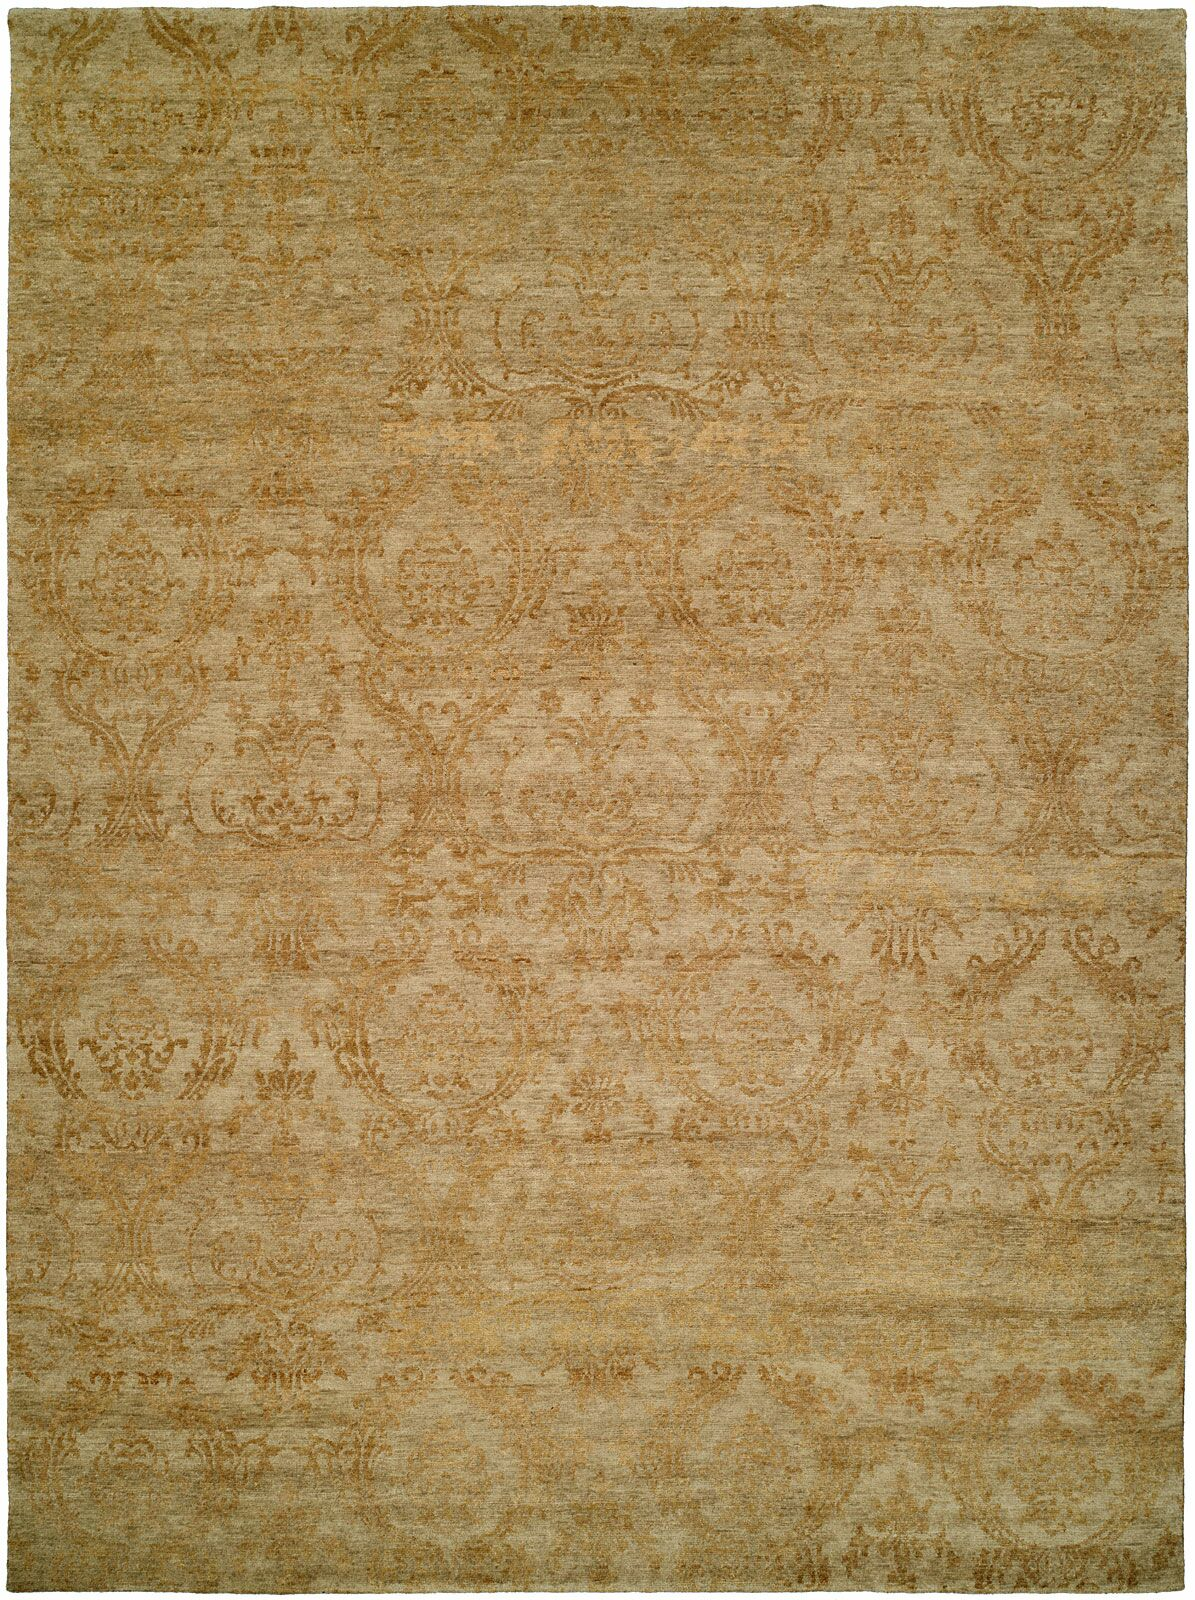 Hurghada Hand-Knotted Beige Area Rug Rug Size: Square 8'